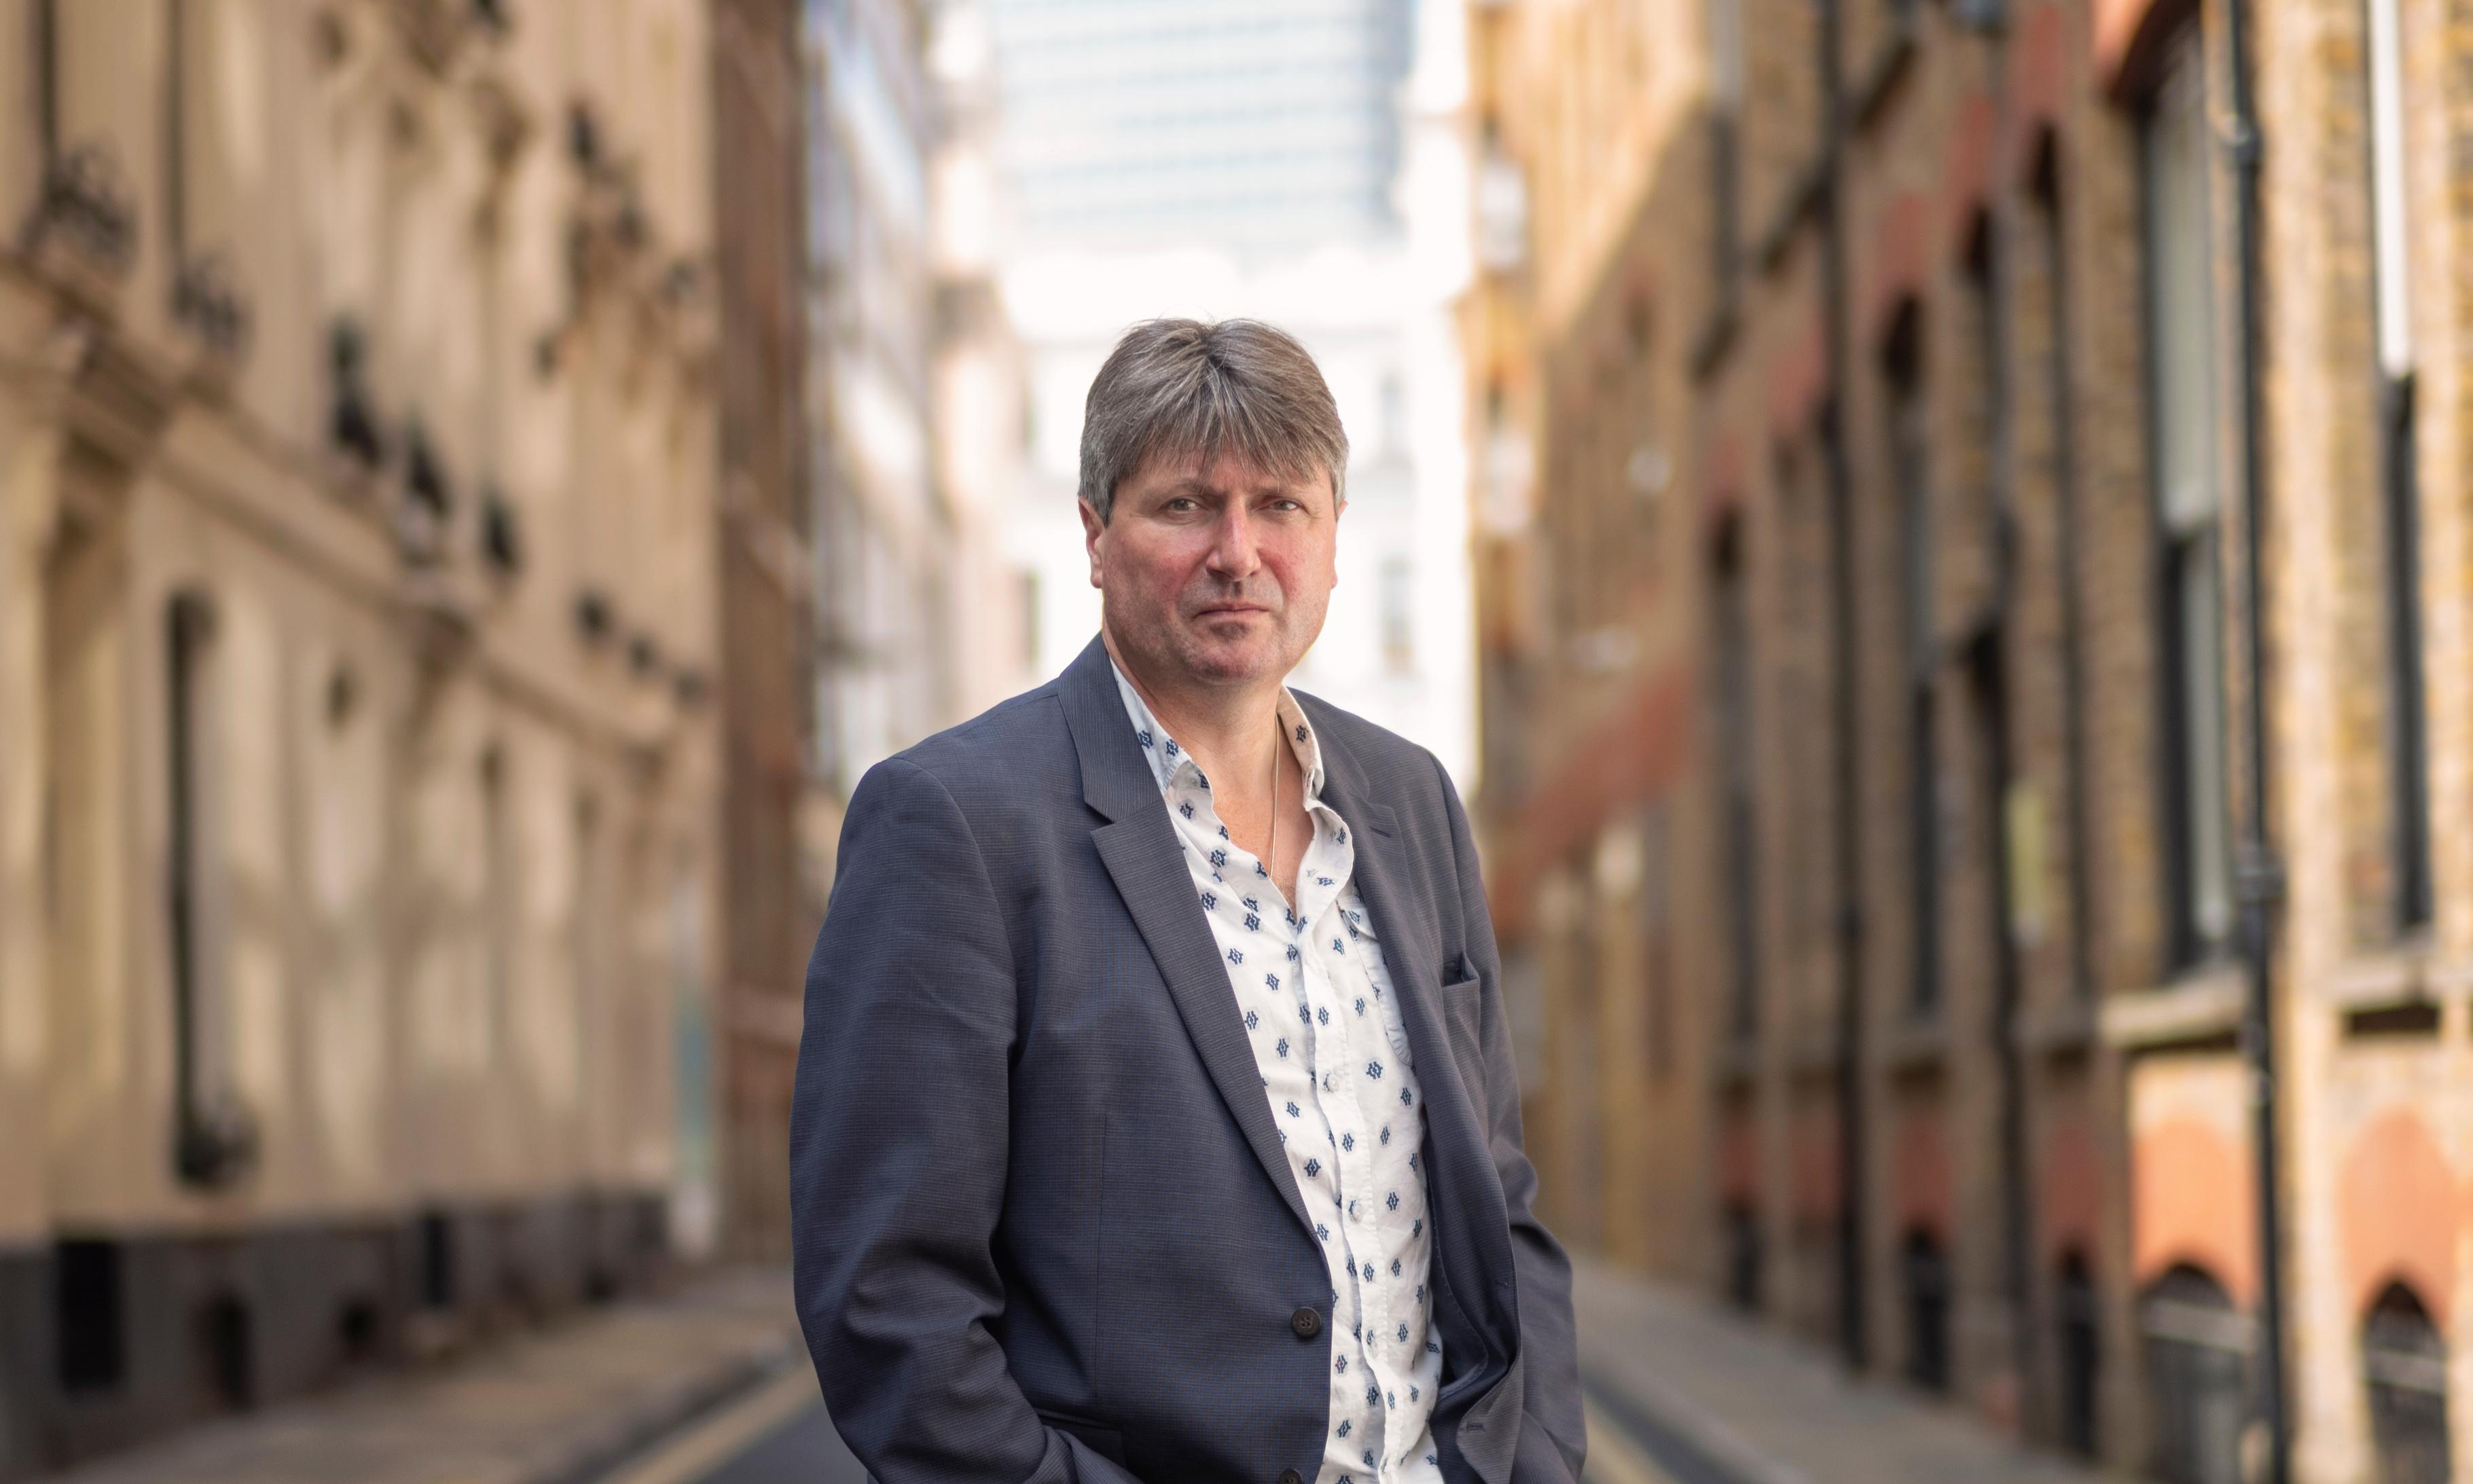 Moon landing poem launches Simon Armitage as poet laureate